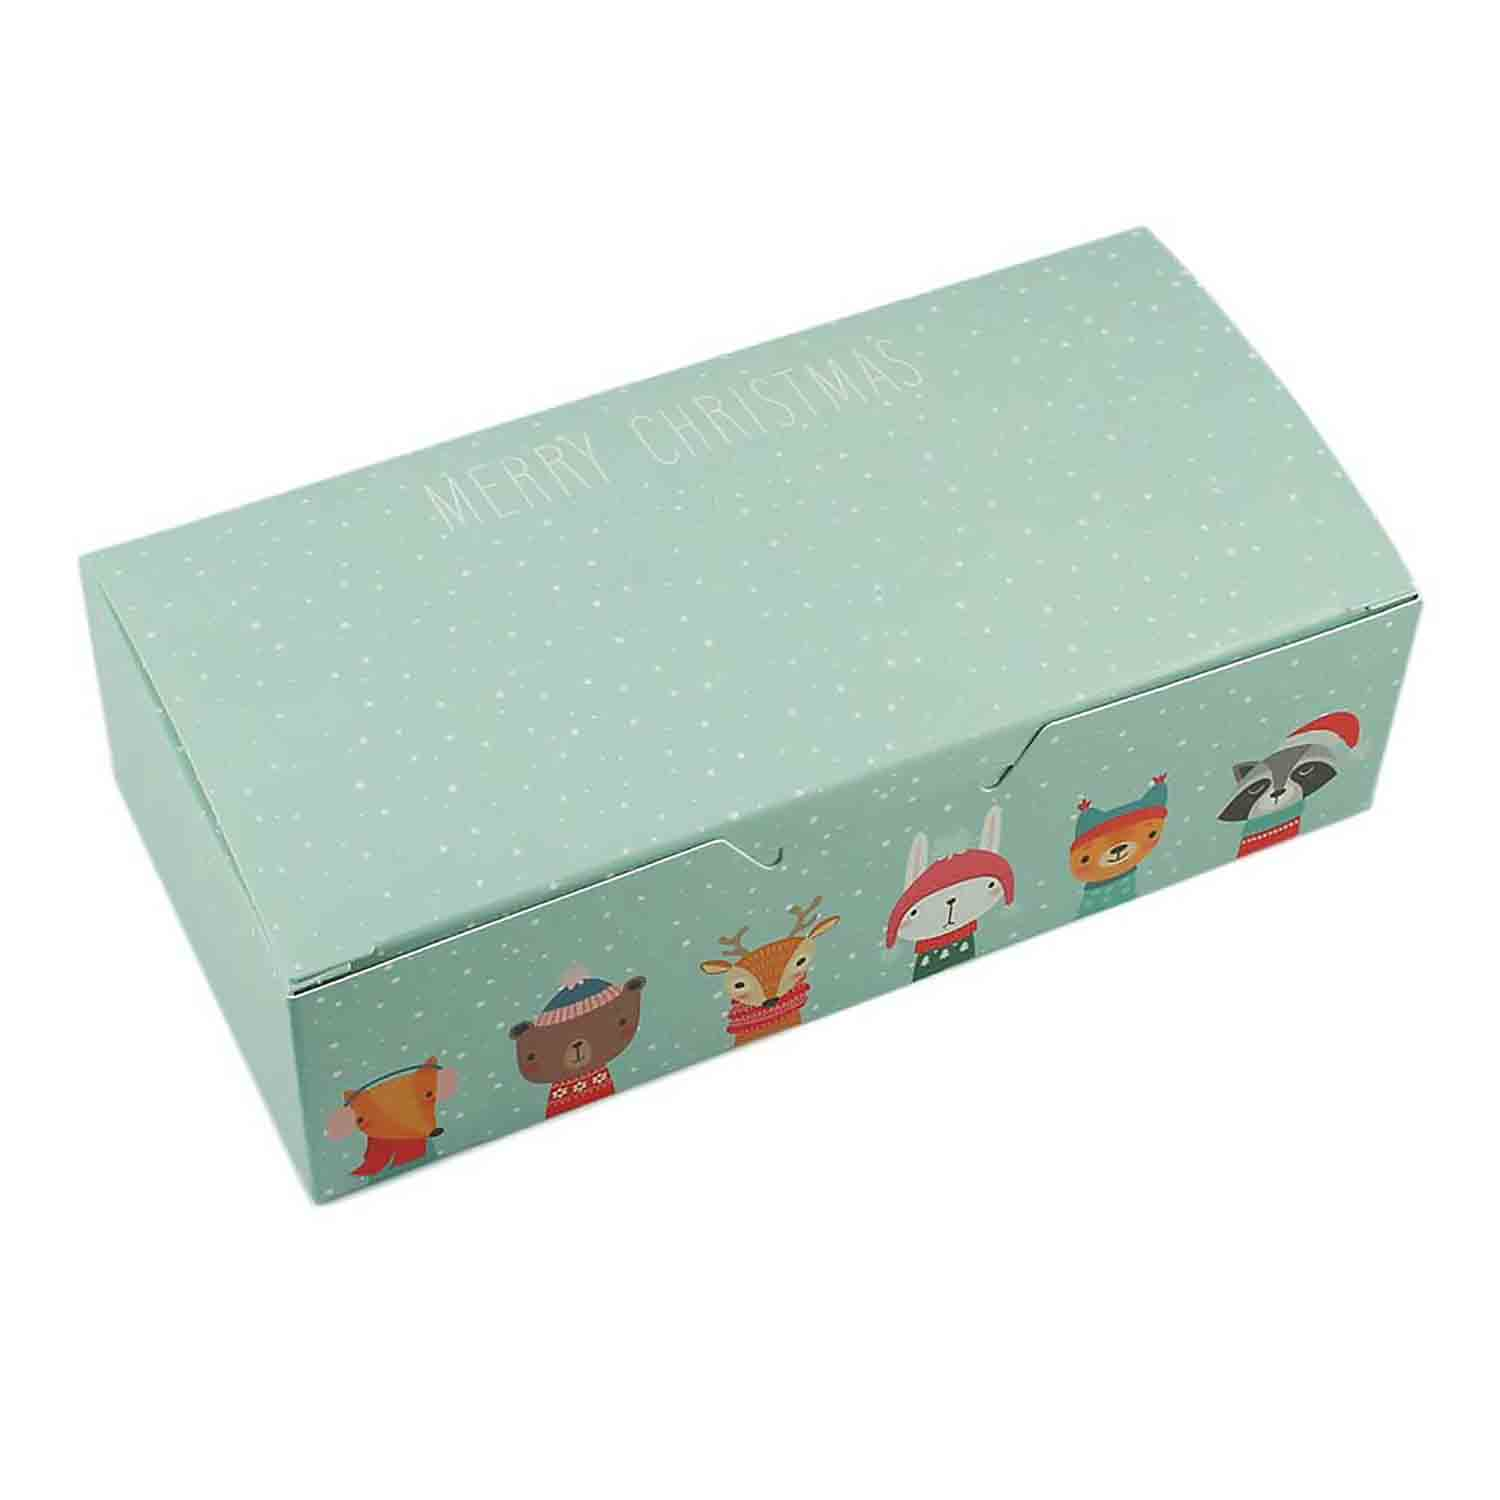 1 lb. Winter Friends Candy Box